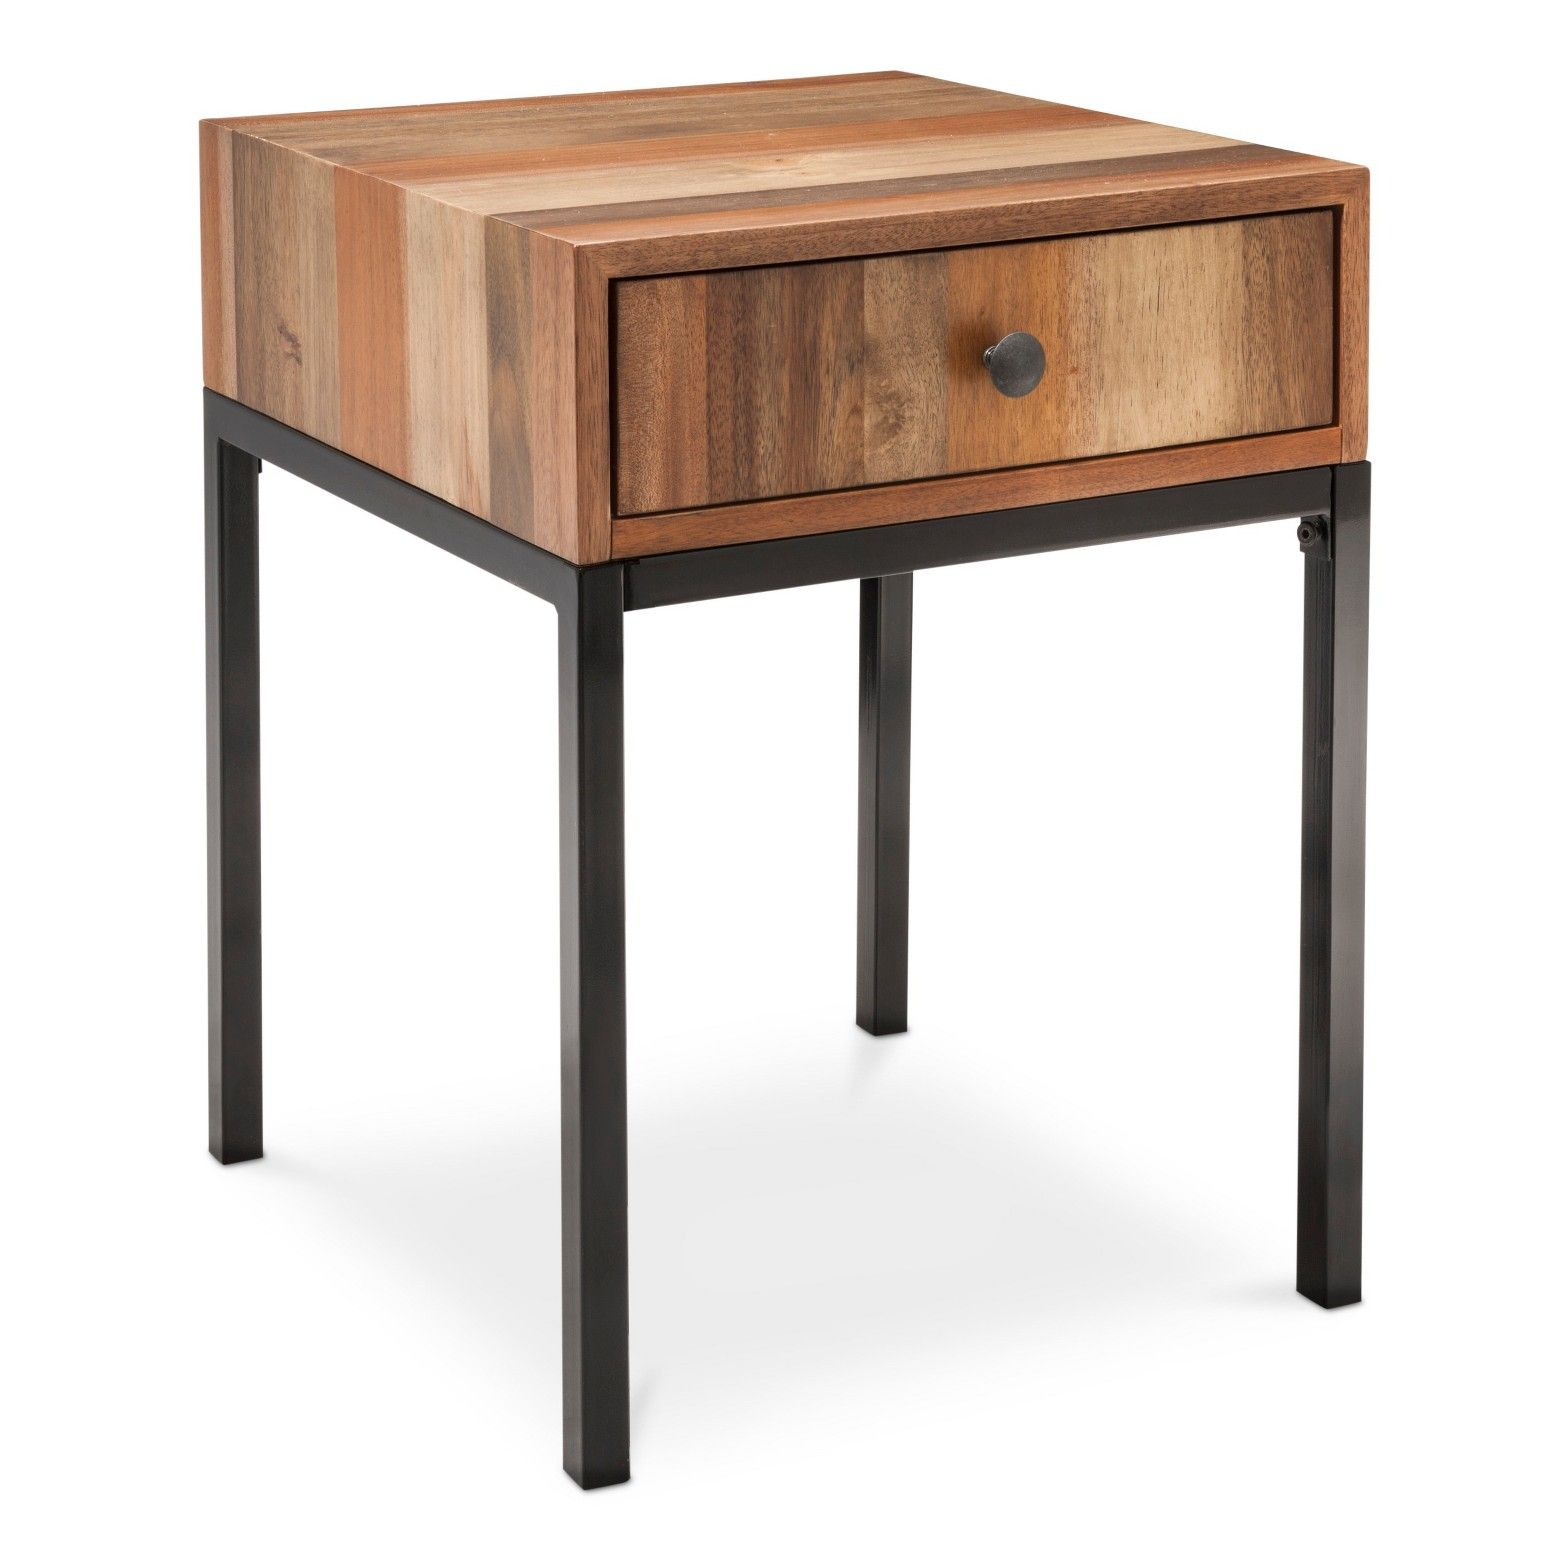 hernwood mixed material side table brown threshold products accent for the perfect mix style and function from your decor this brings cool club chair black mirrored nightstand